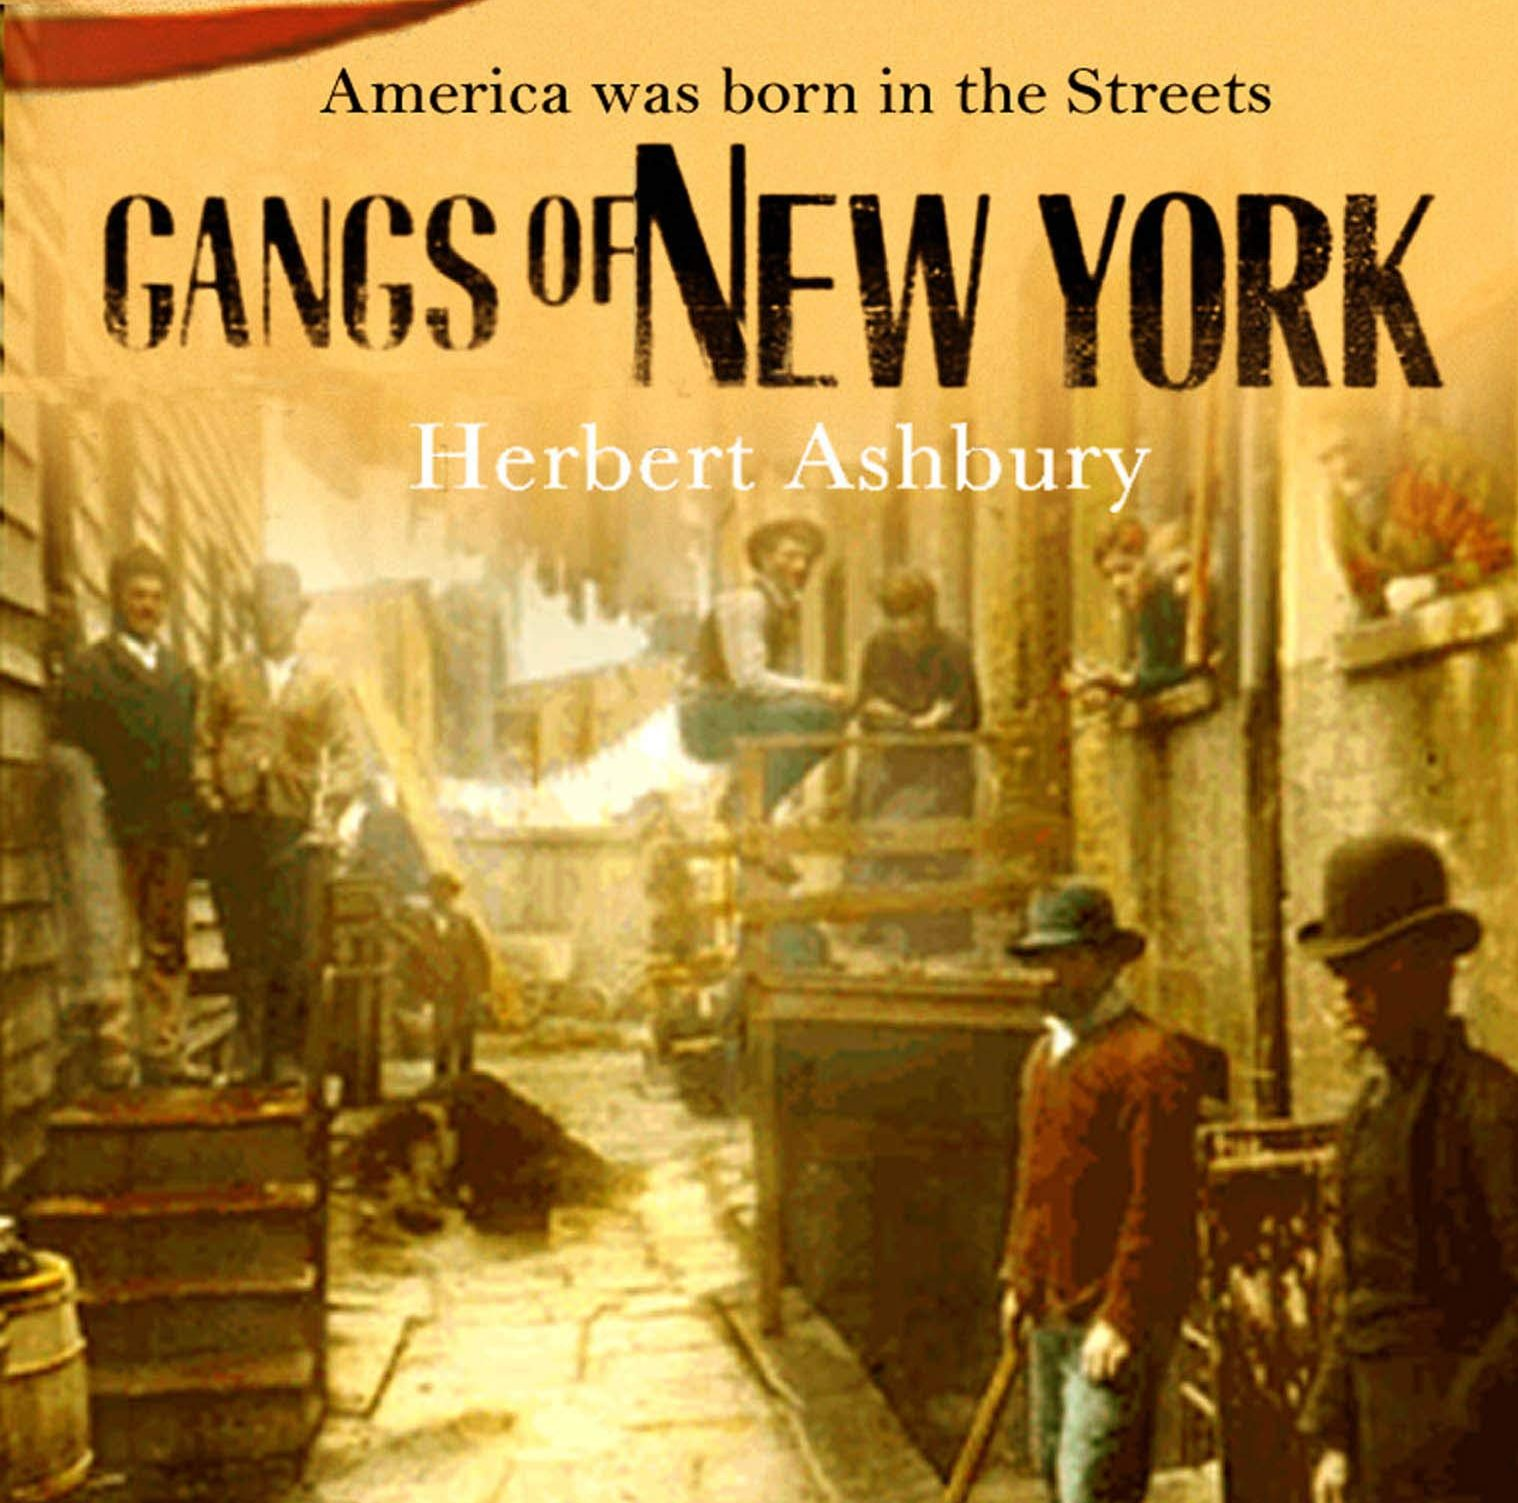 16 e1617800262482 20 Things You Probably Didn't Know About Gangs Of New York